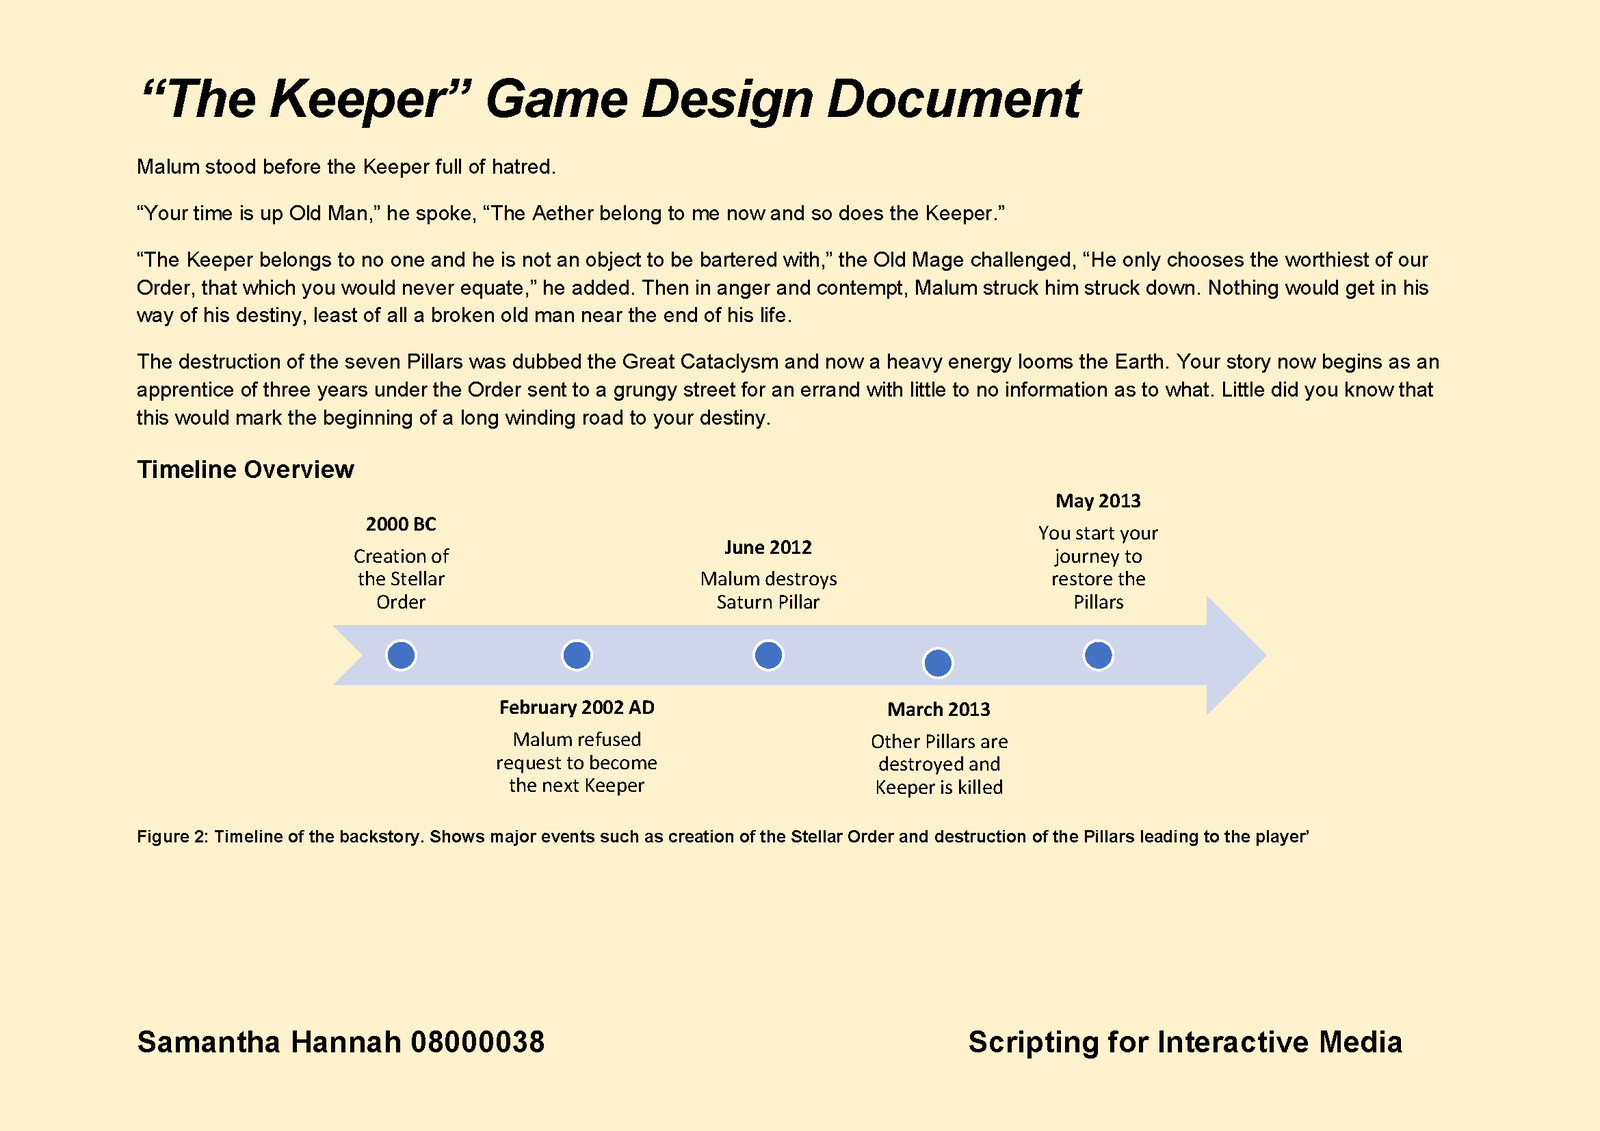 Game Design Document Page 4